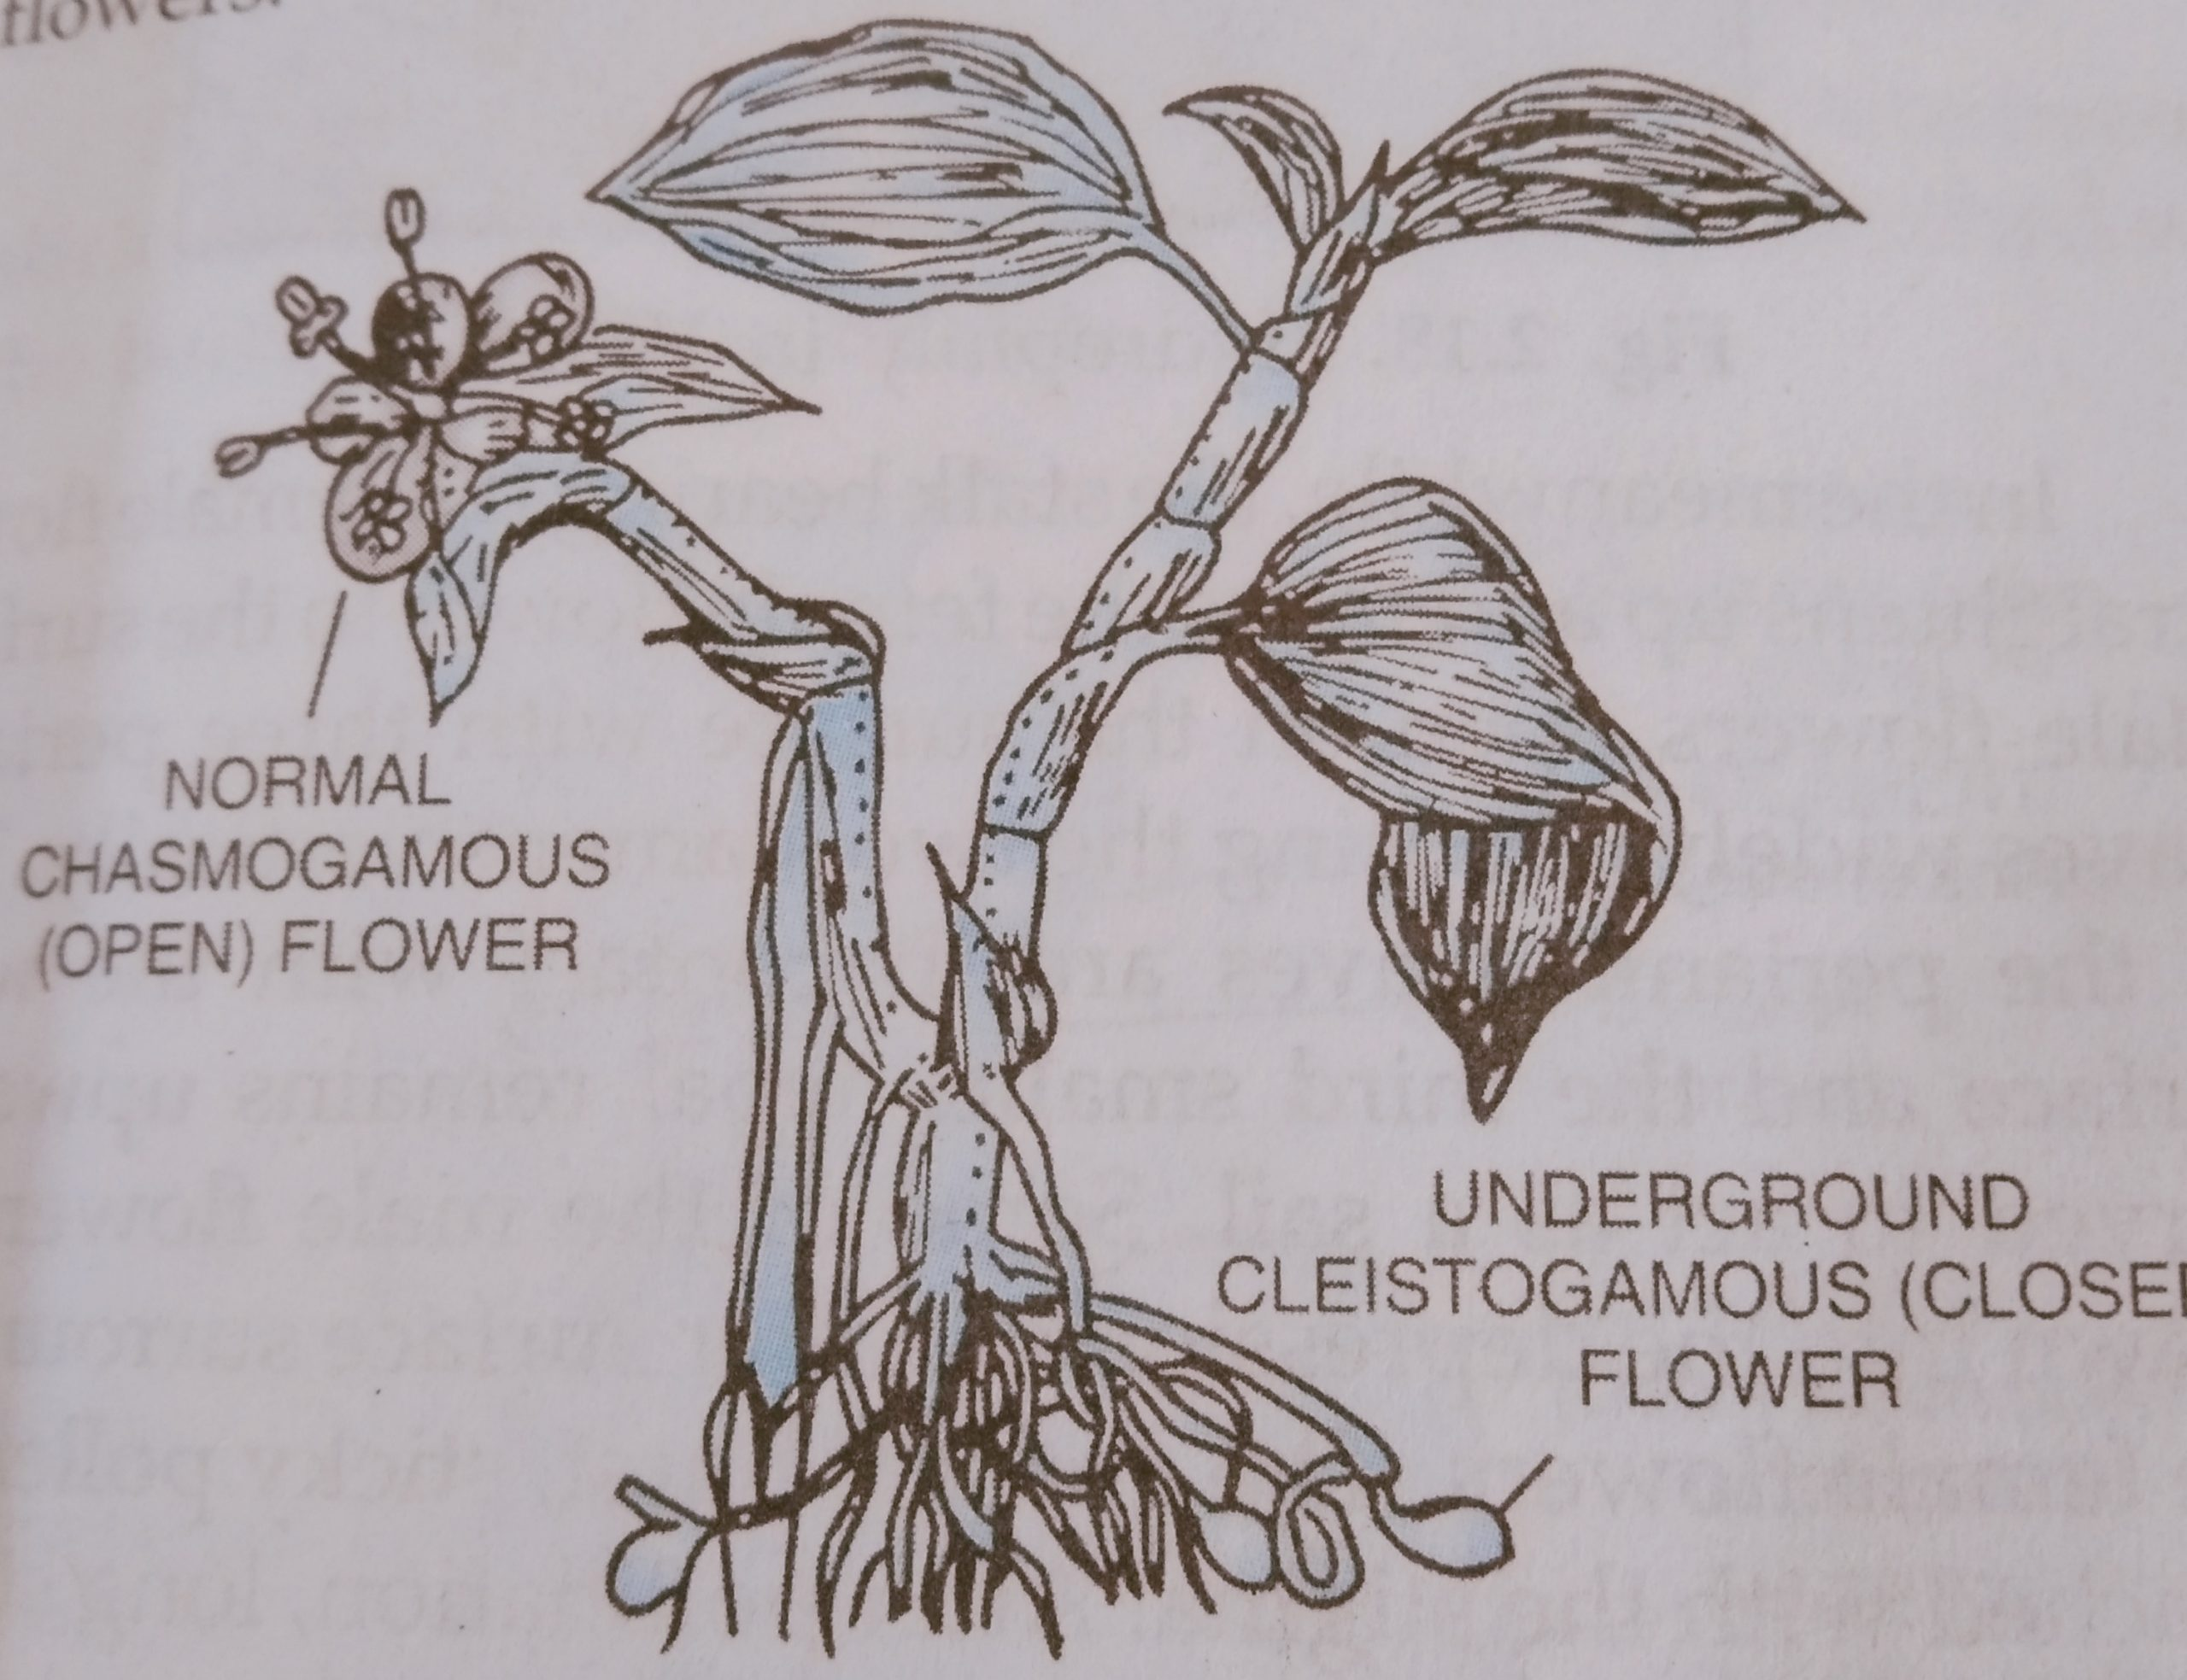 Cleistogamous and chasmogamous flower in commelina benghalensis